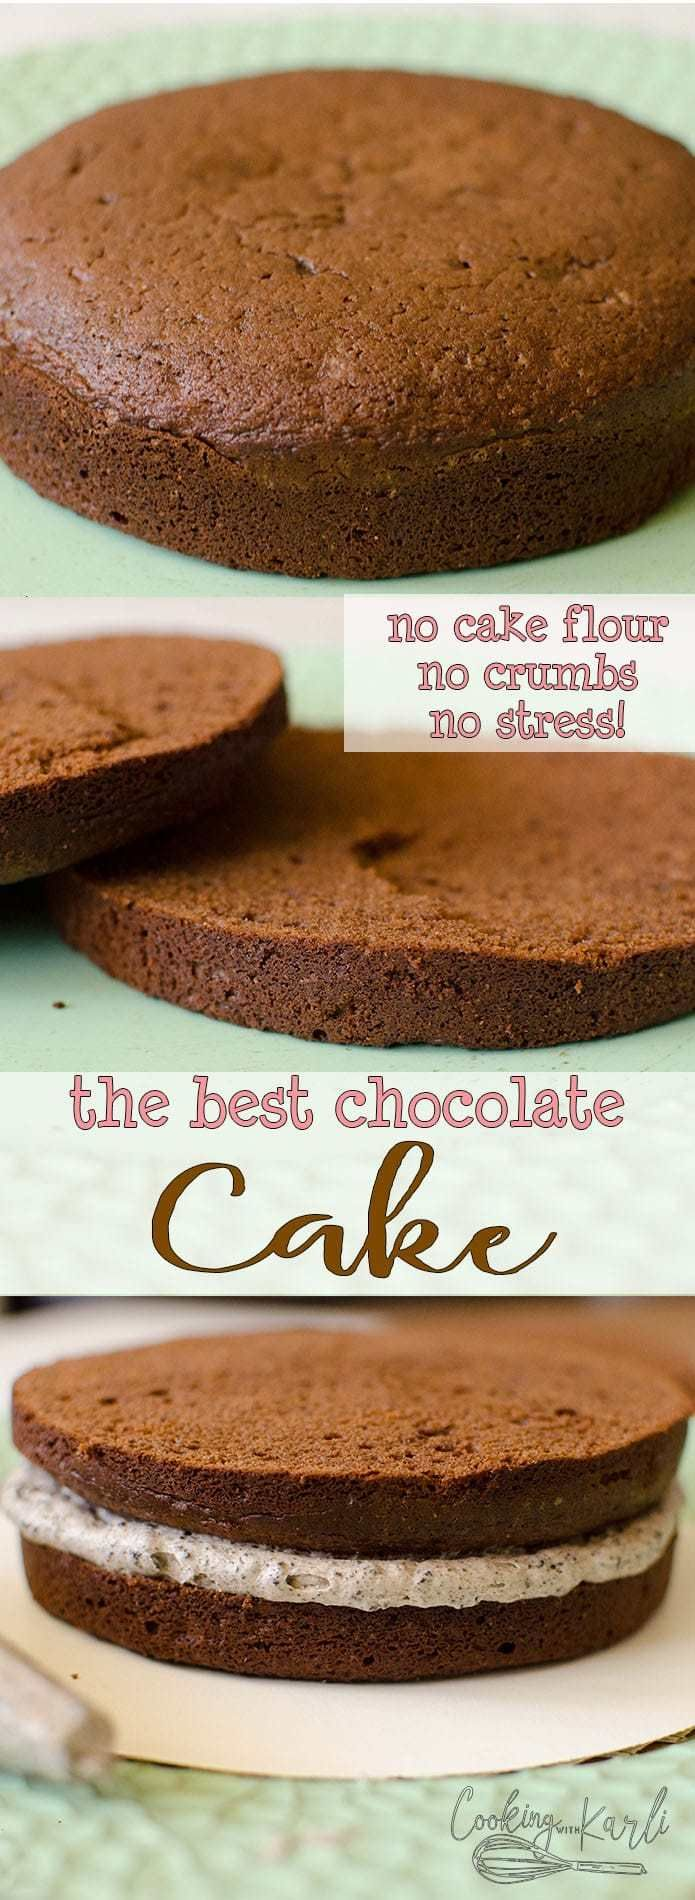 The Best Chocolate Cake is perfect base for layering, frosting and decorating! T… – recipes